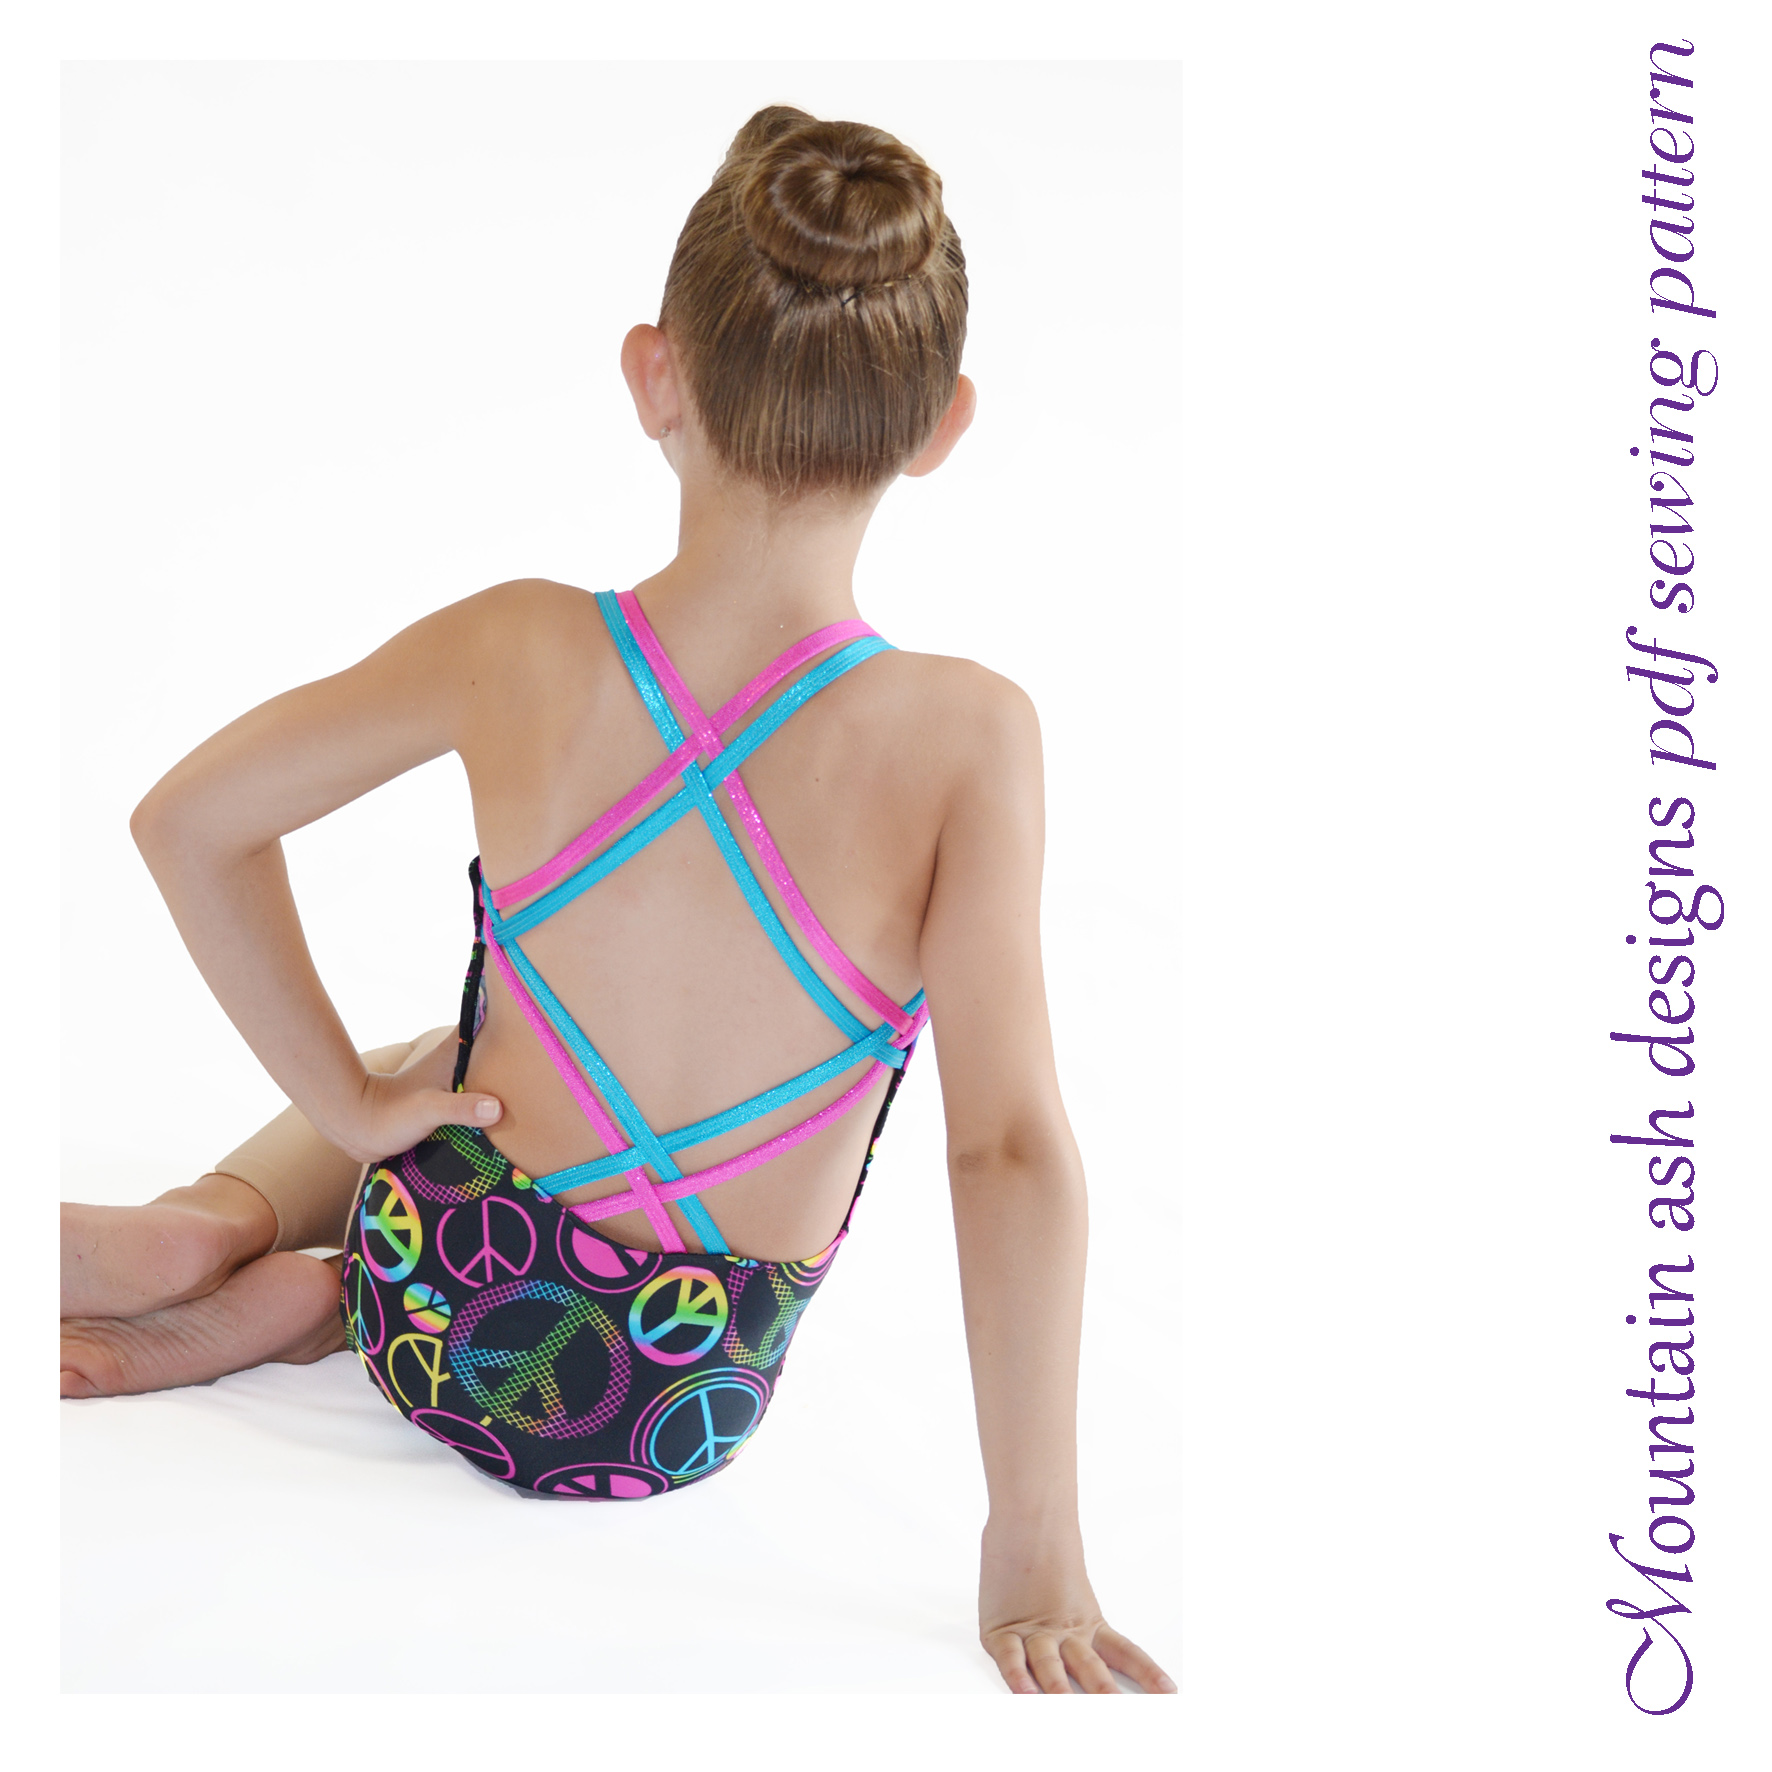 Georgia Strappy Back Swimsuit and Leotard Sewing Pattern in Girls Sizes 2-14